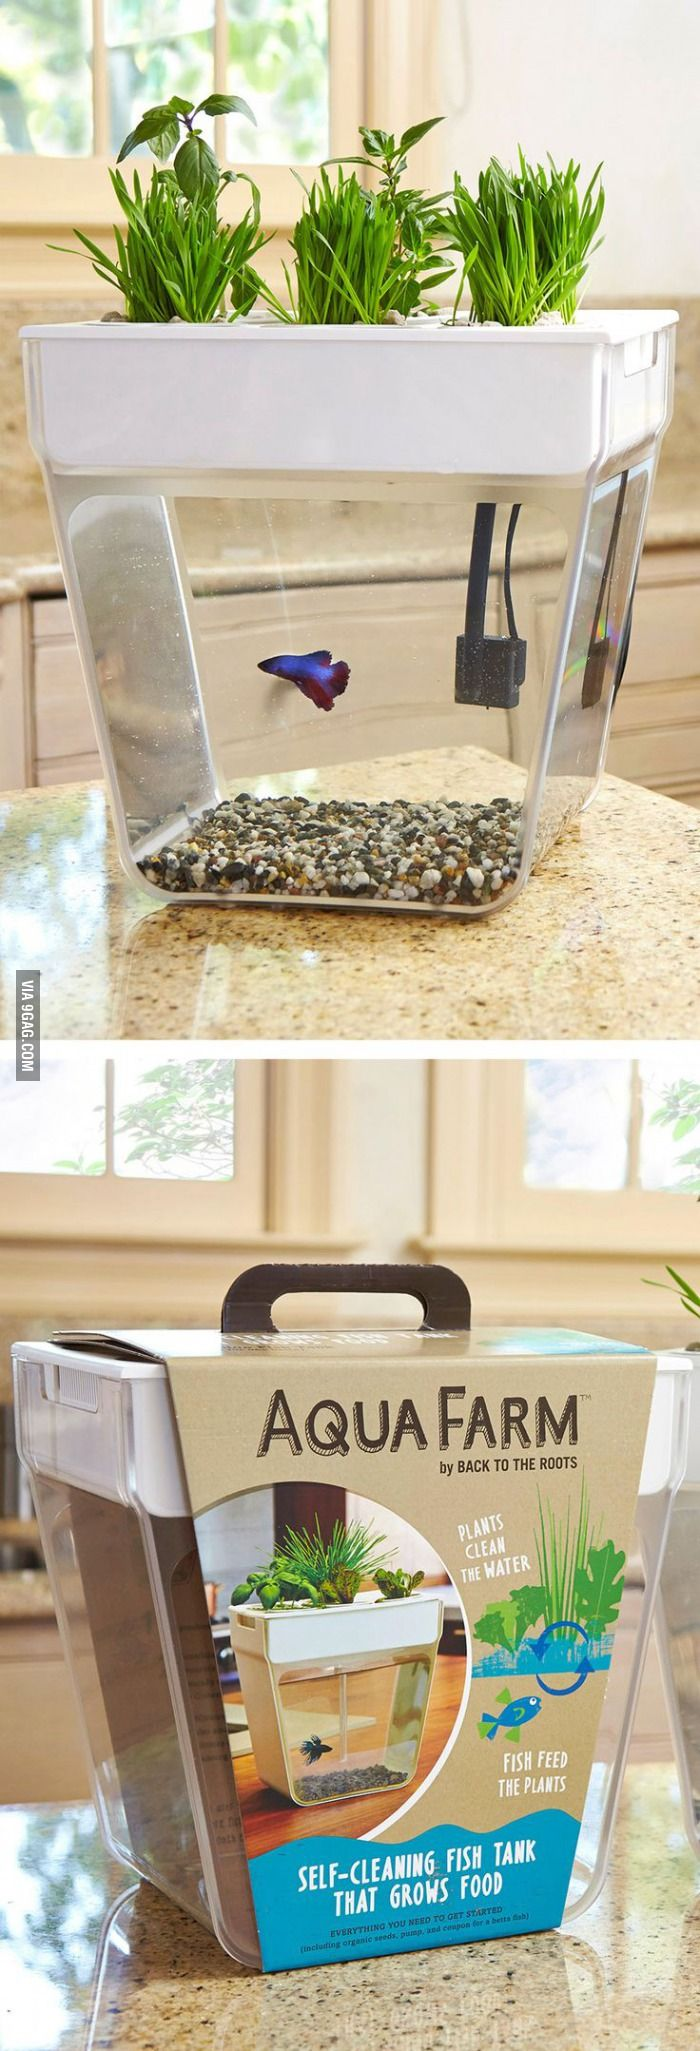 Self sustaining, self cleaning beta fish tank and garden.